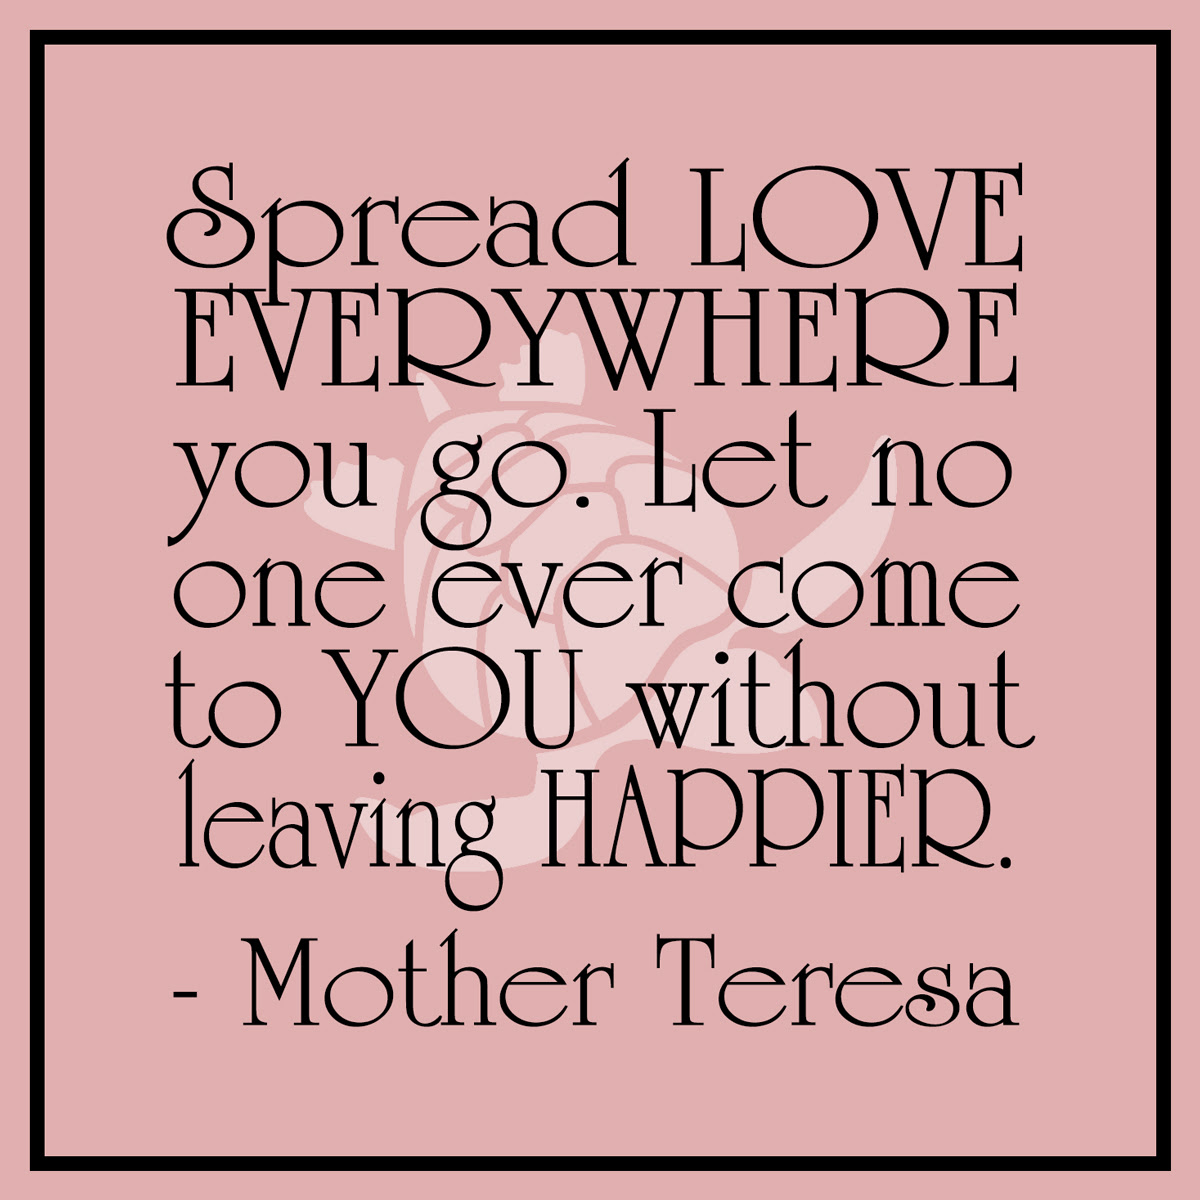 Mother Teresa Spread Love Quote Waterfront Properties Blog